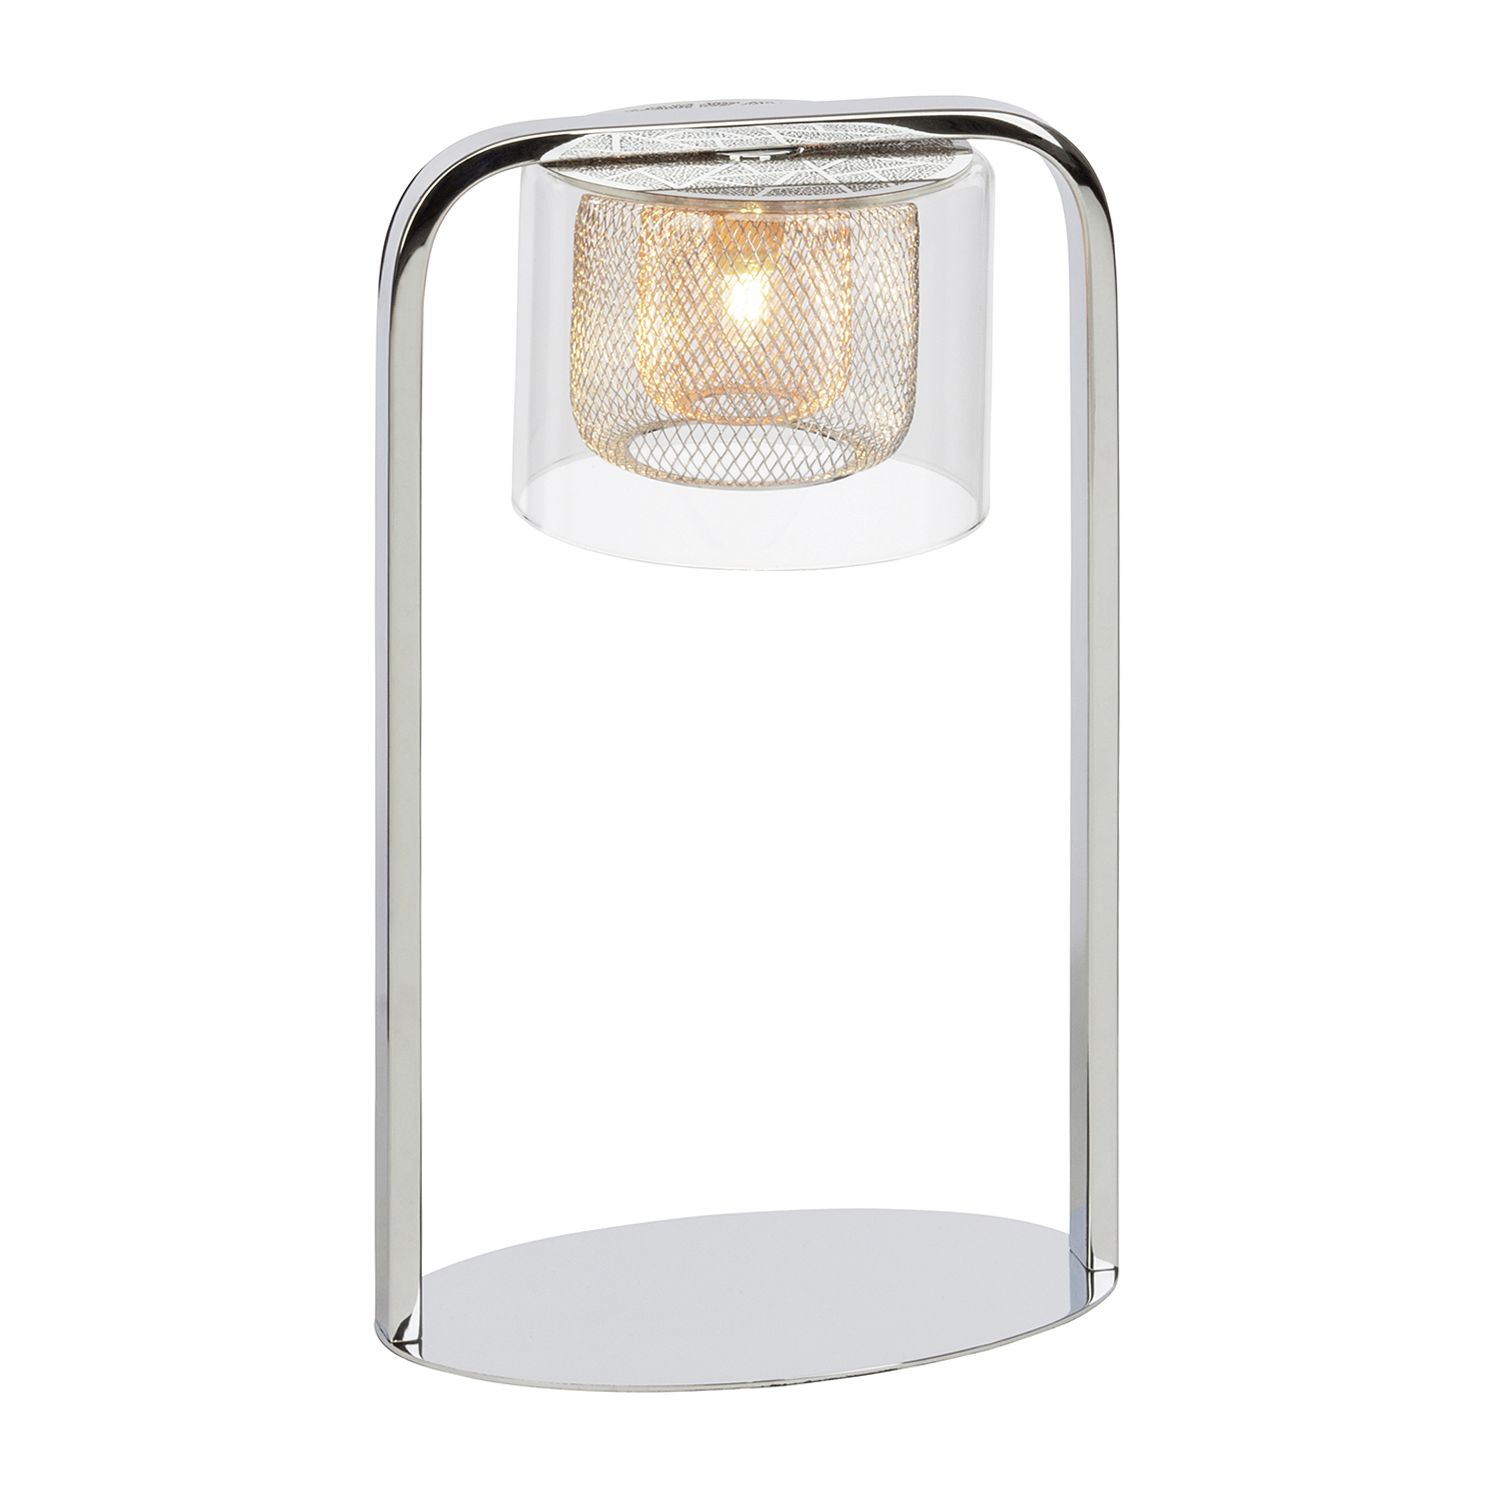 EEK A++, Lampe de bureau Magic - Verre / Métal - 1 ampoule, Brilliant